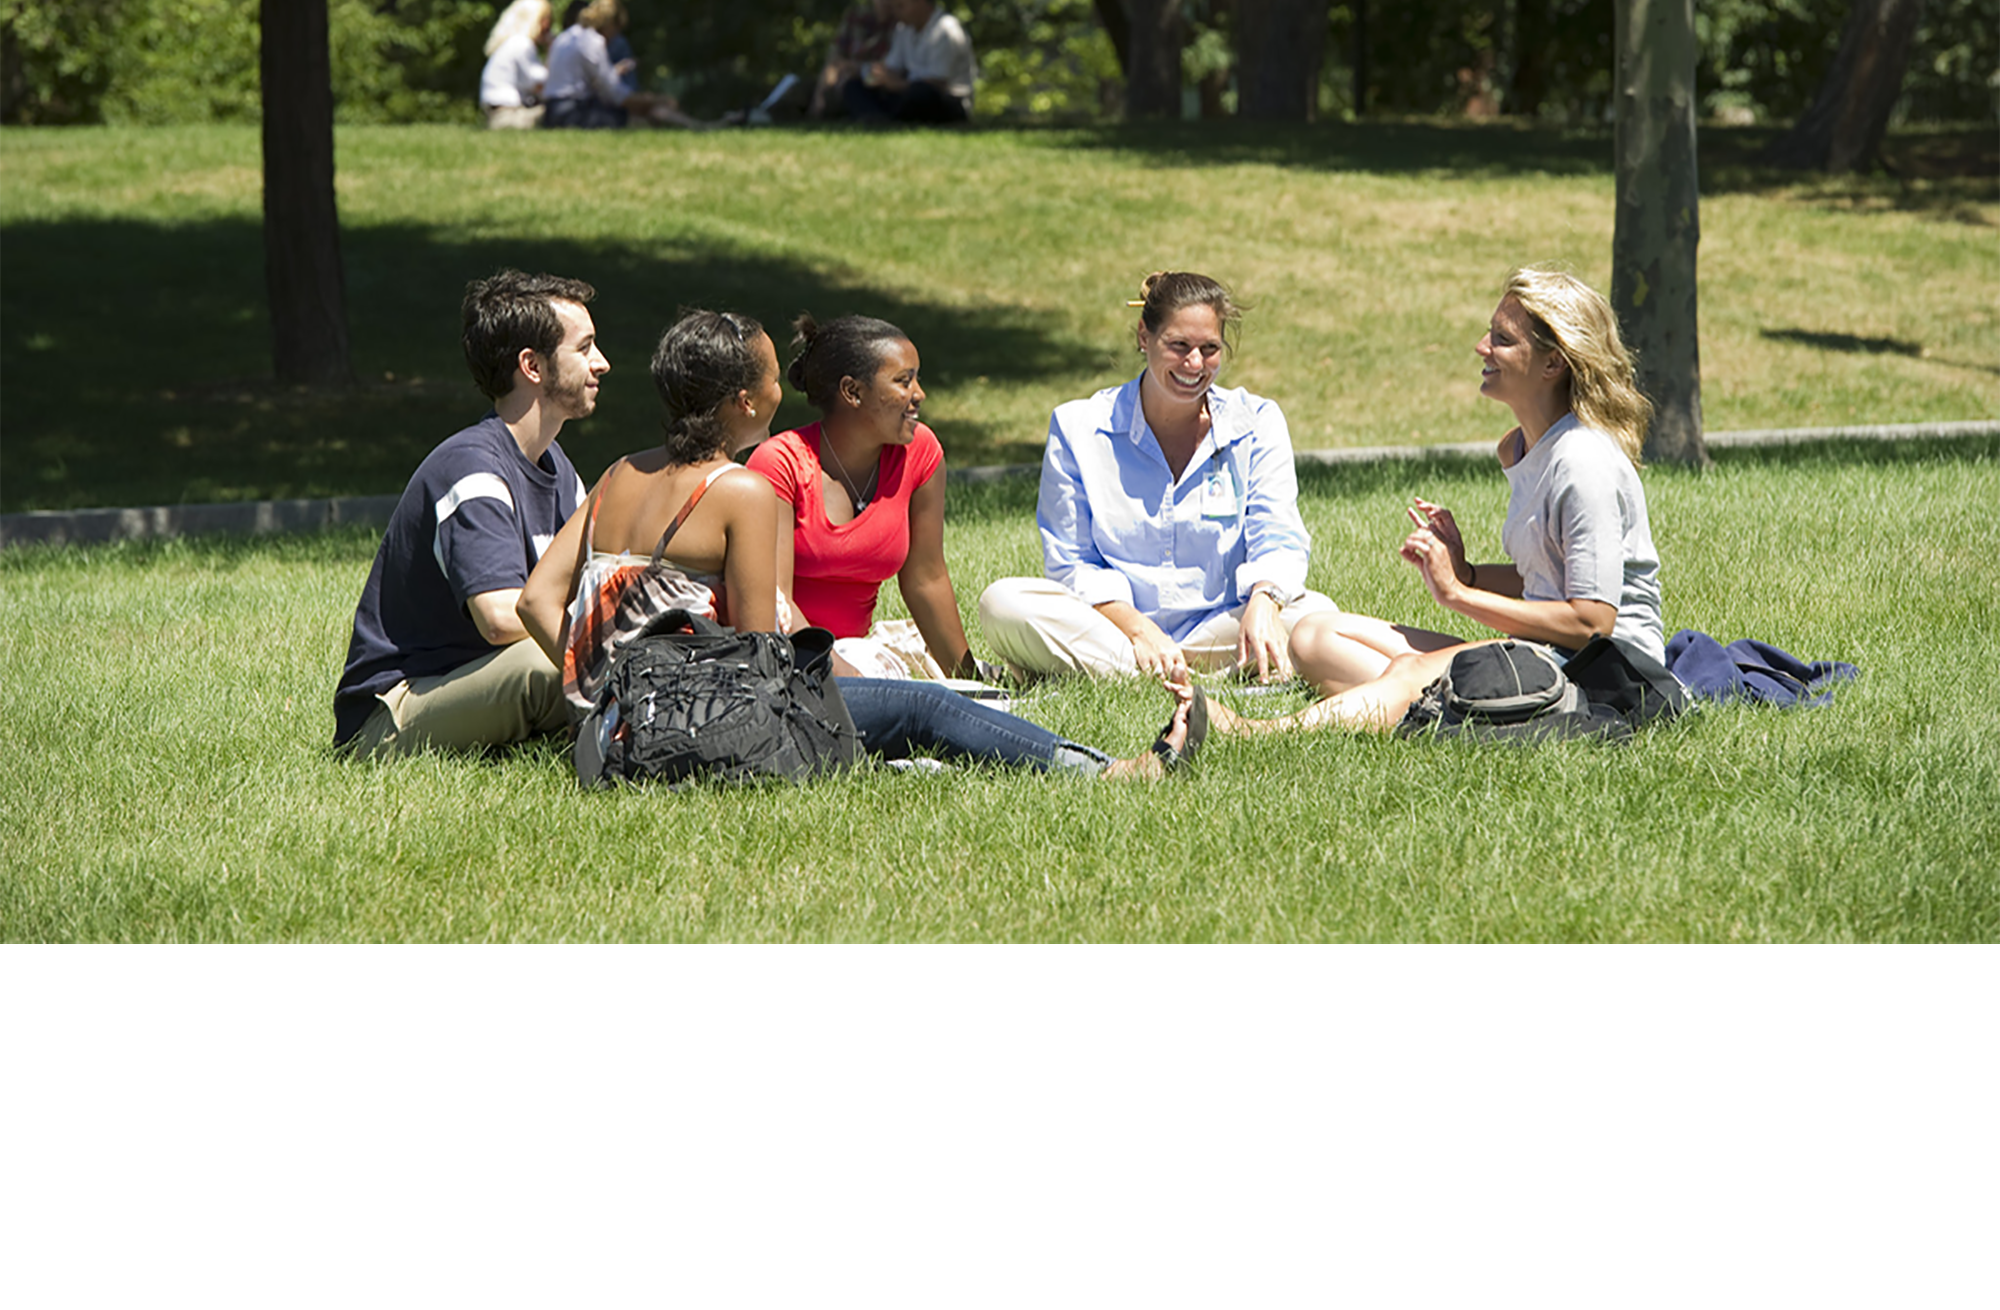 MGH Institute students on the lawn